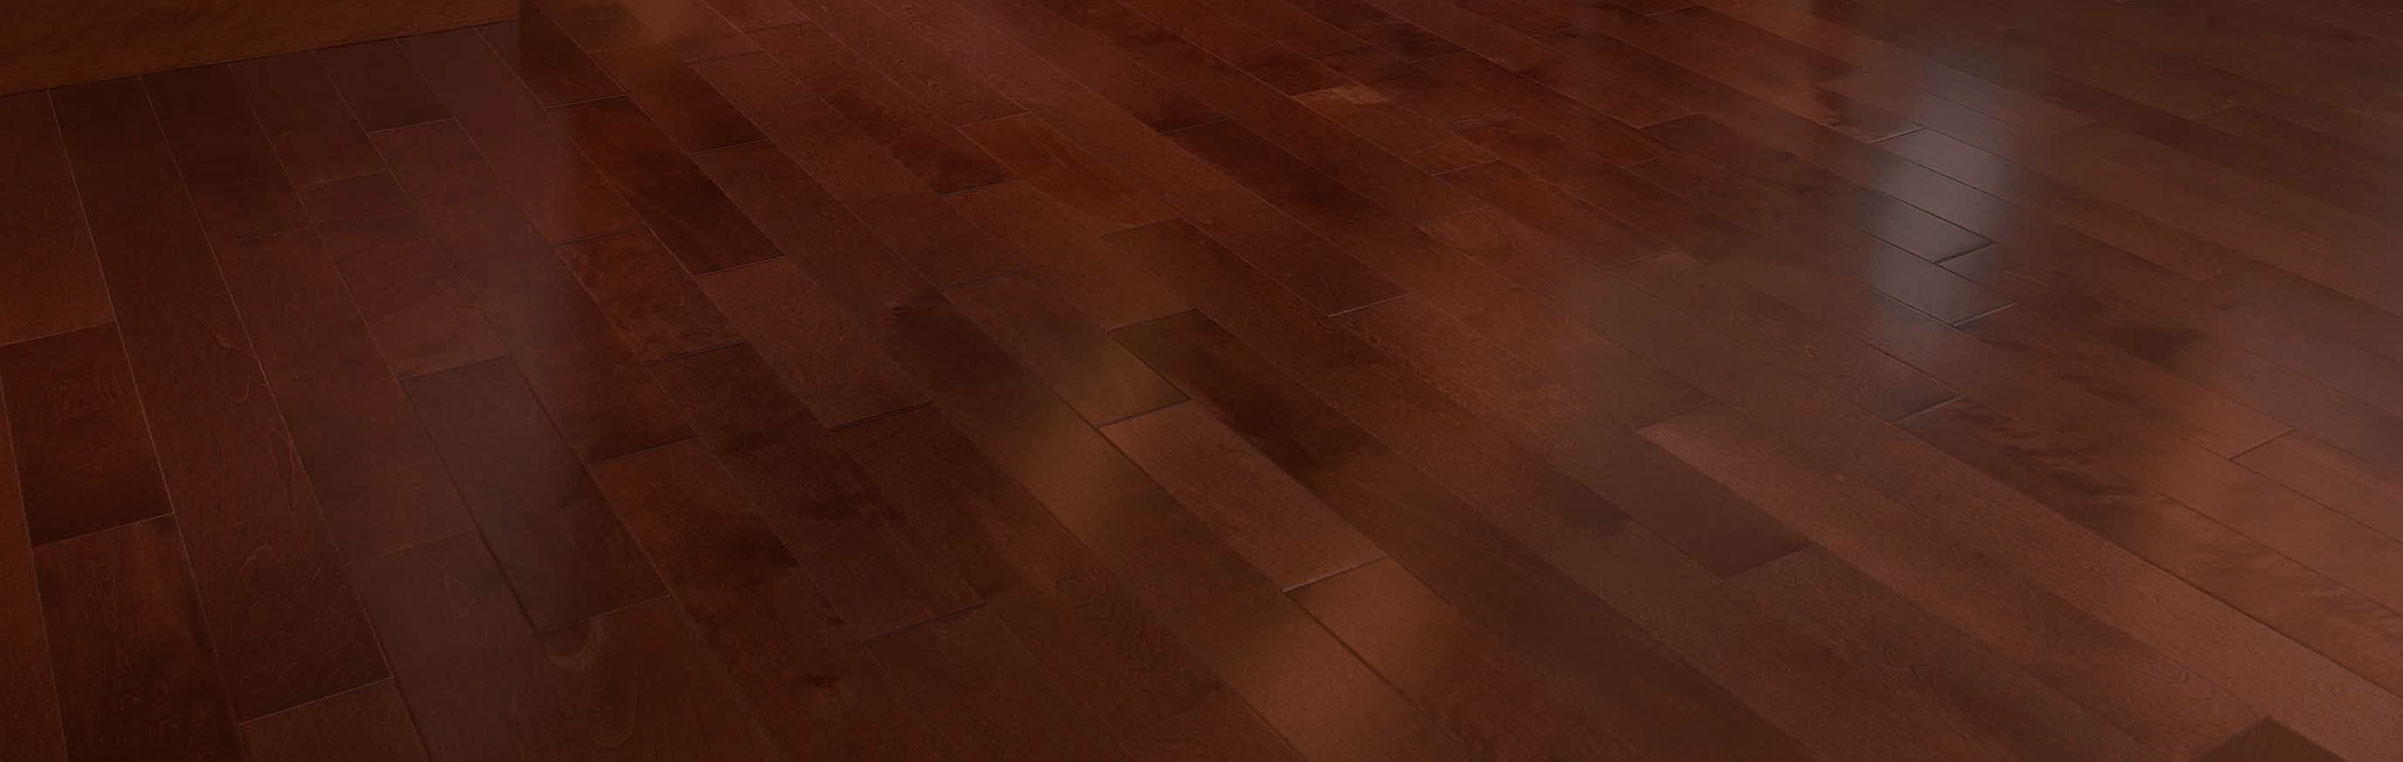 Clearance Hardwood Flooring distressed flooring Discount Hardwood Flooring Liquidators Toronto Area